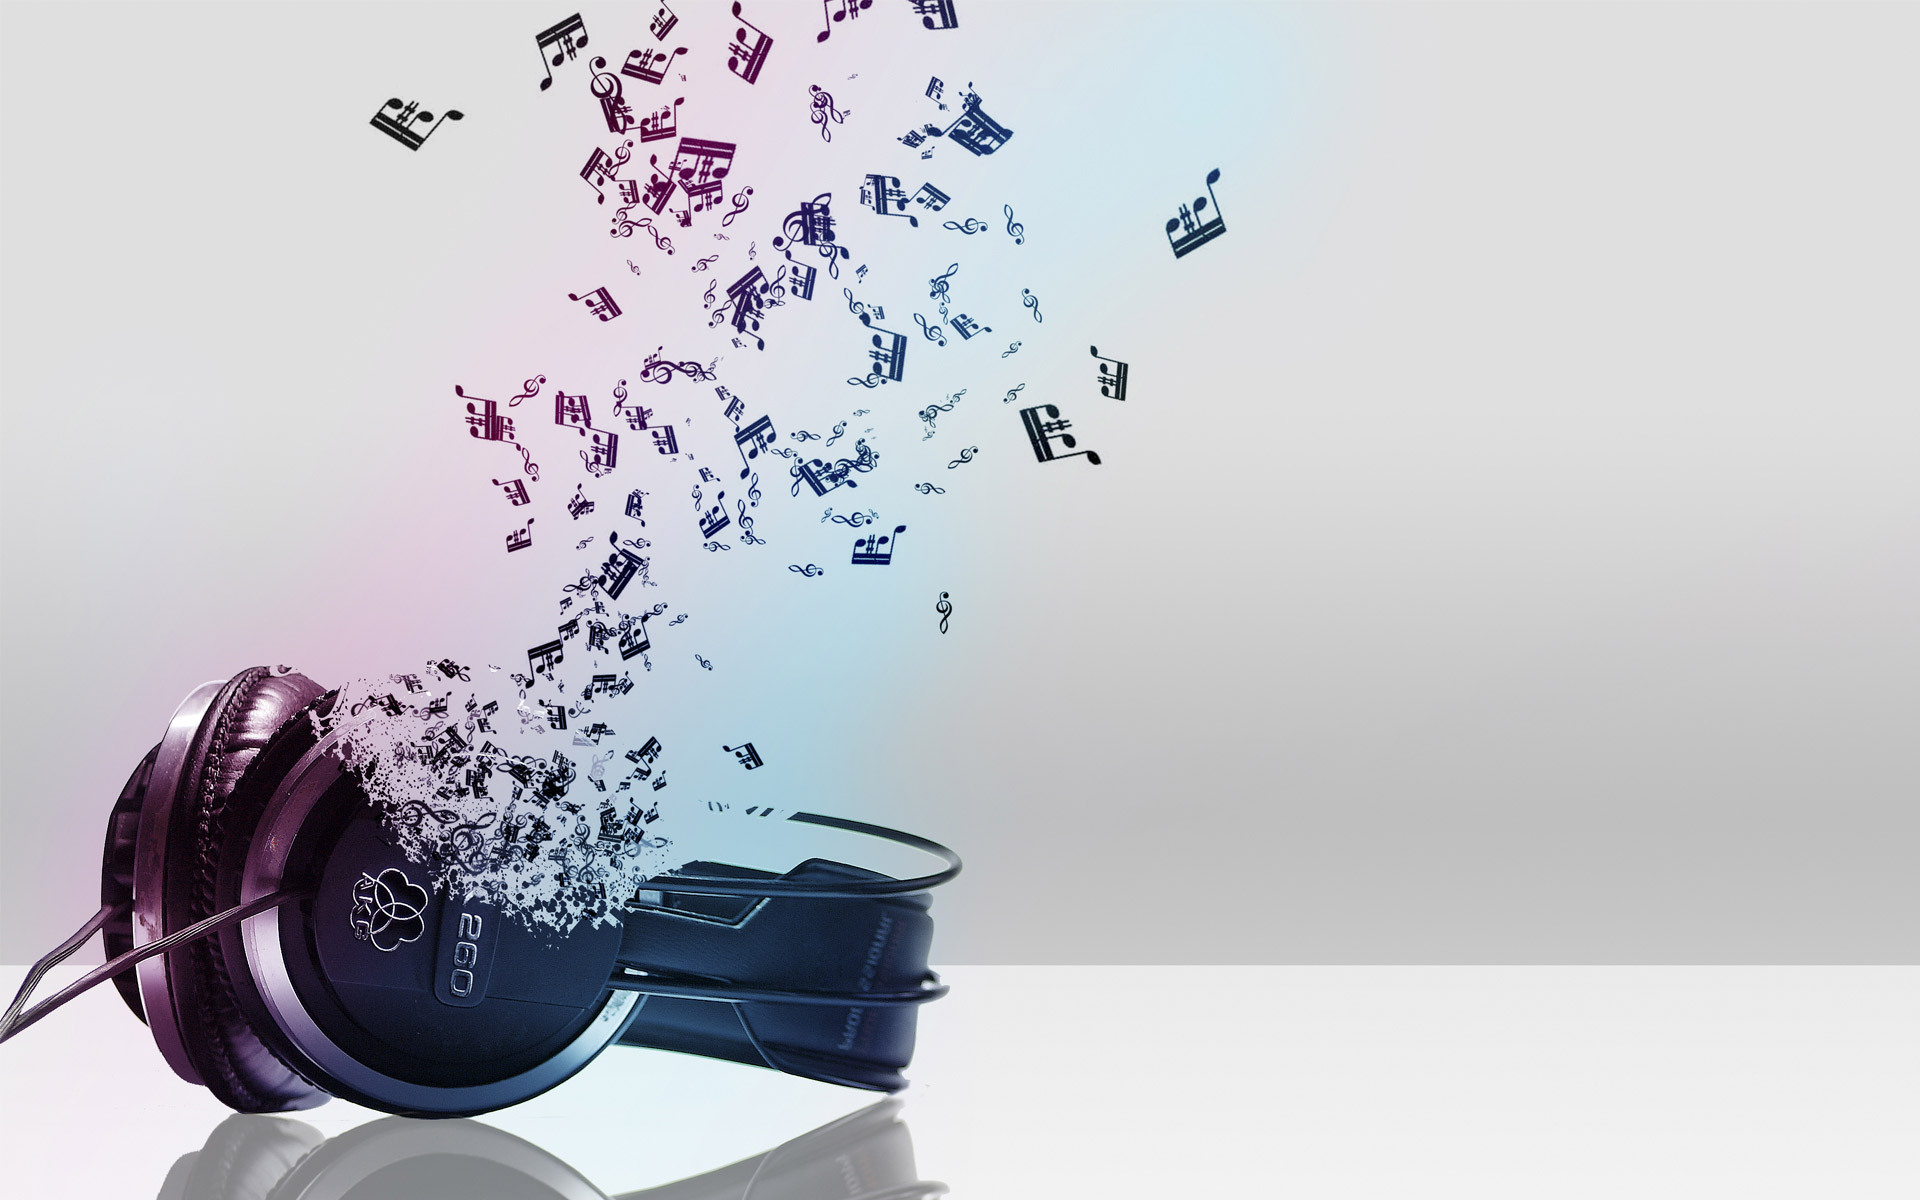 http://dailyhdwallpaper.com/wp-content/uploads/Cool-Abstract-Music-Headphone-S-Wallpaper.jpg